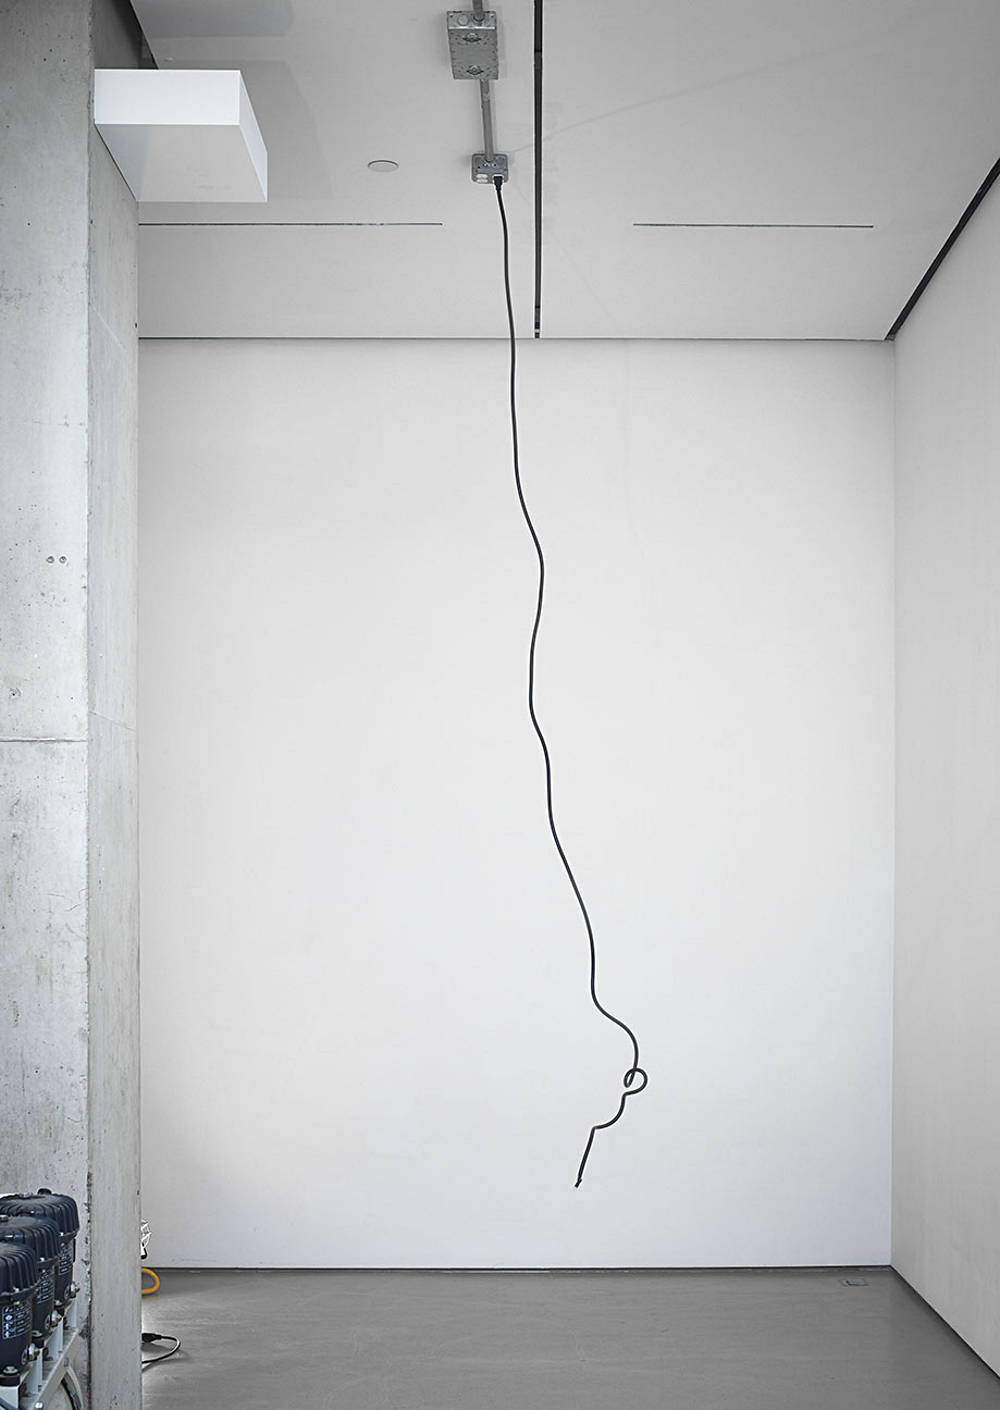 Sean Shim-Boyle, Beanstalk, 2018. EMT conduit, compressor and rubber tube